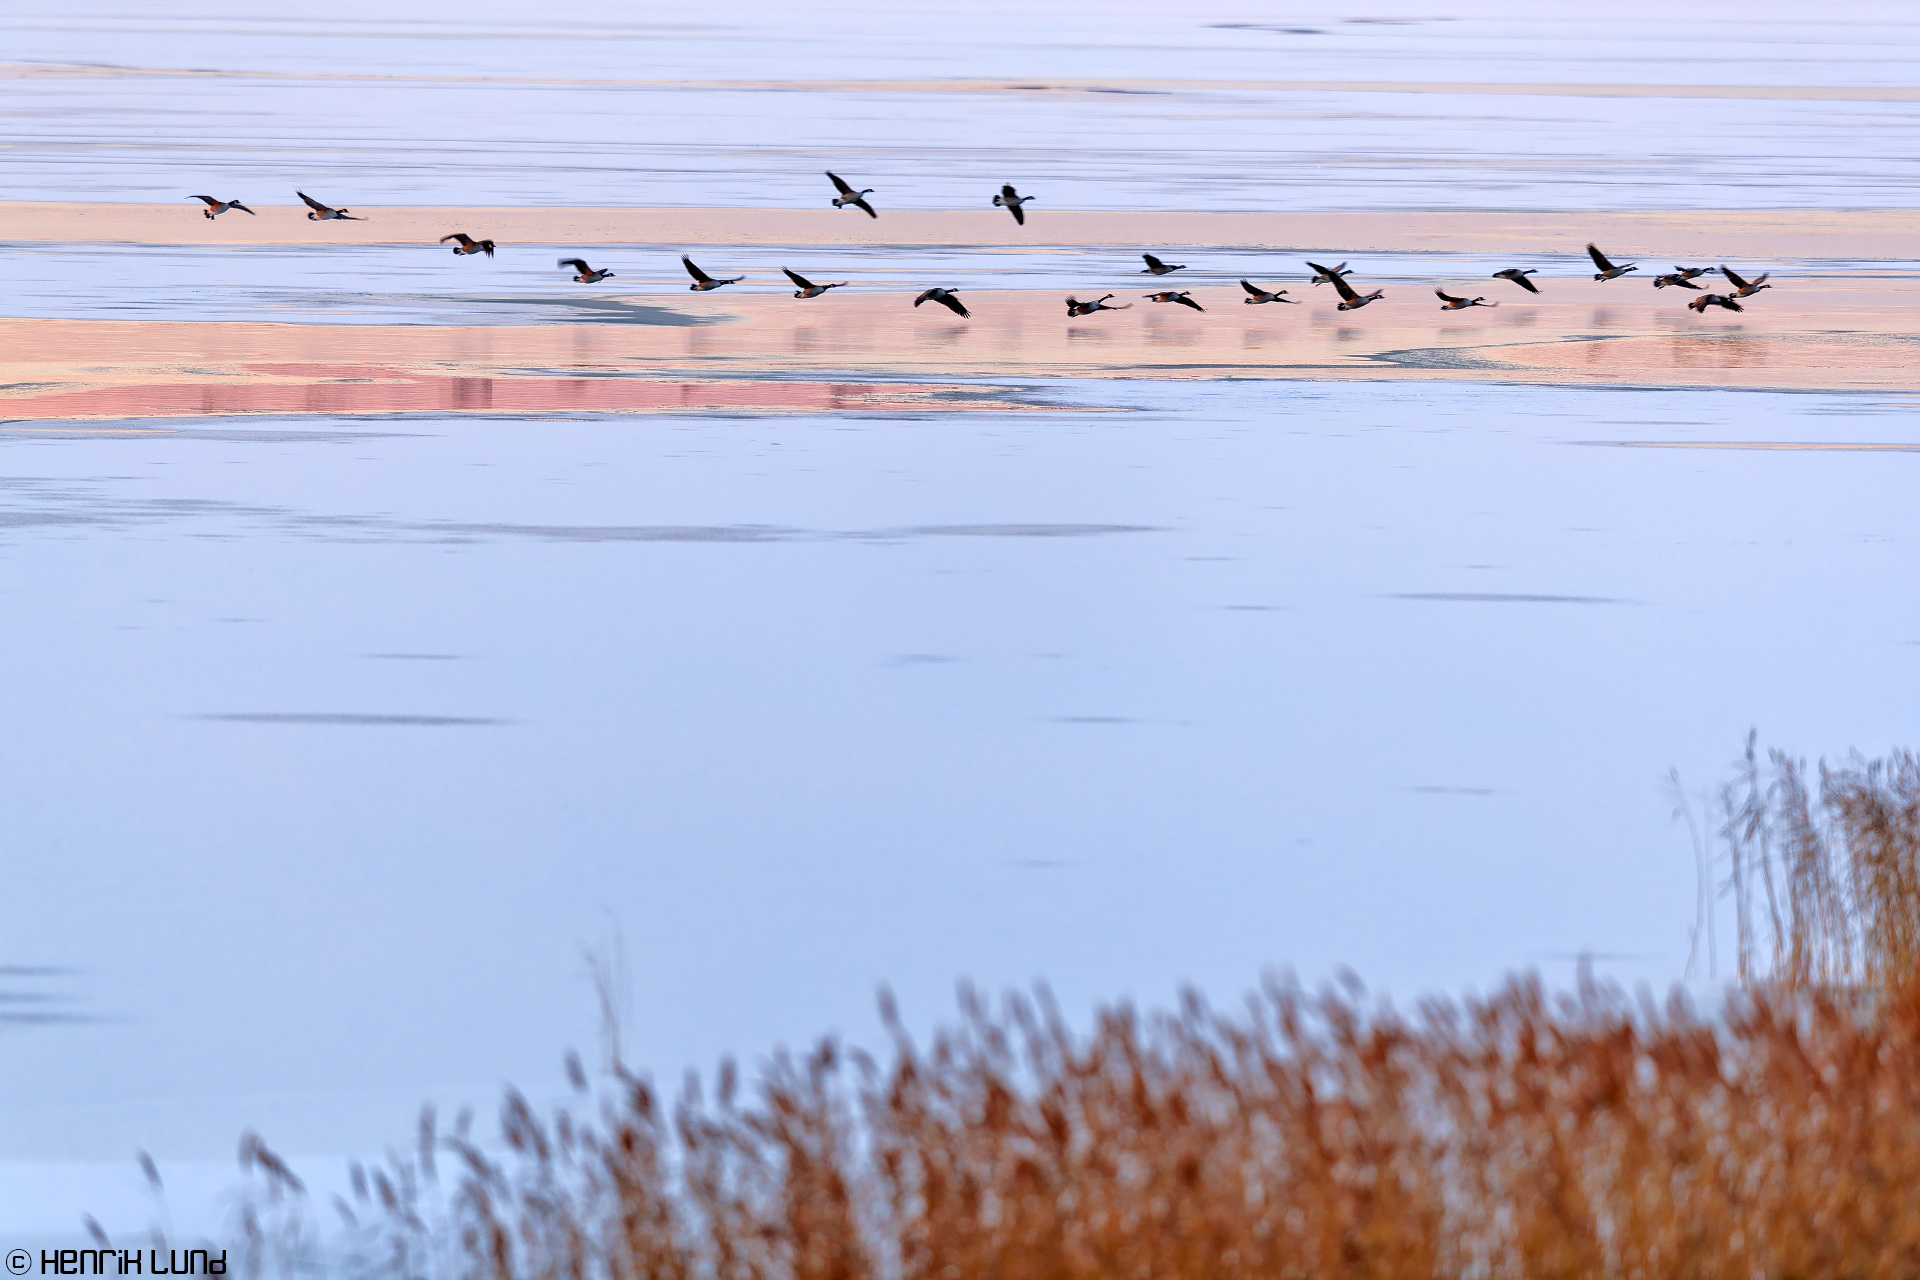 Canada geese searching for the last open waters on the lake. Lappträsk, Finland. November 2016.